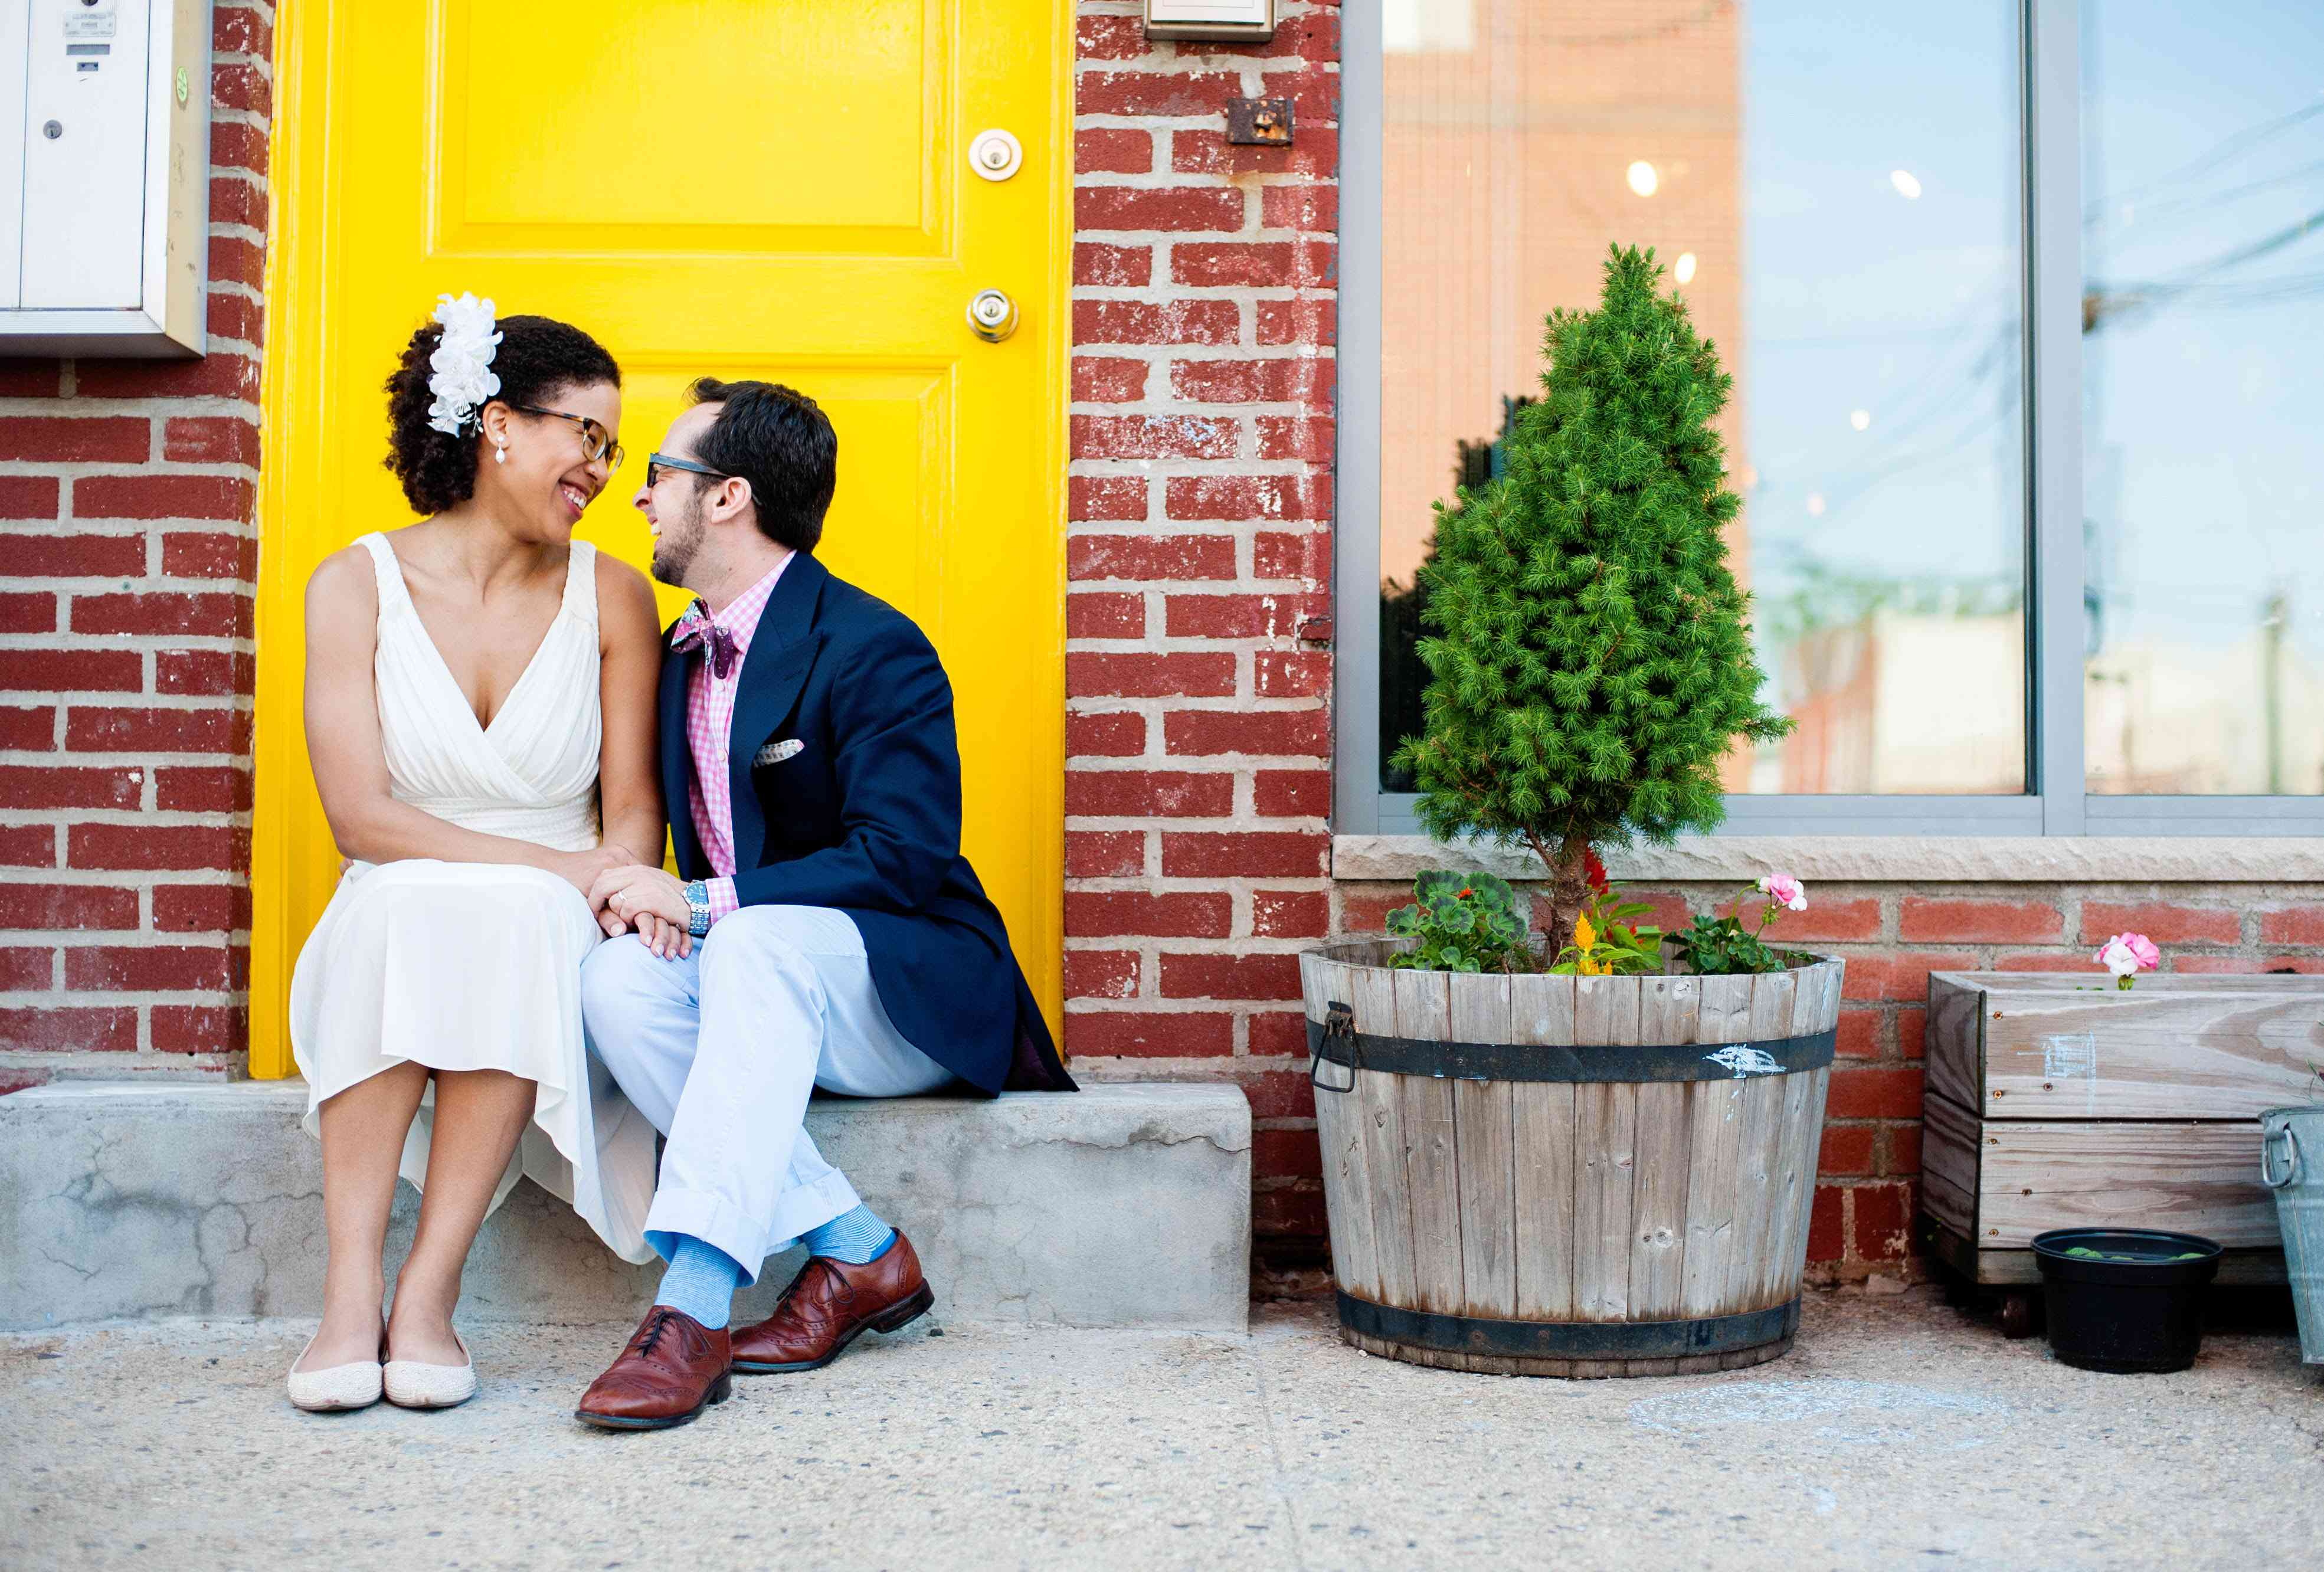 Bride and groom sitting on stoop and looking at each other happily